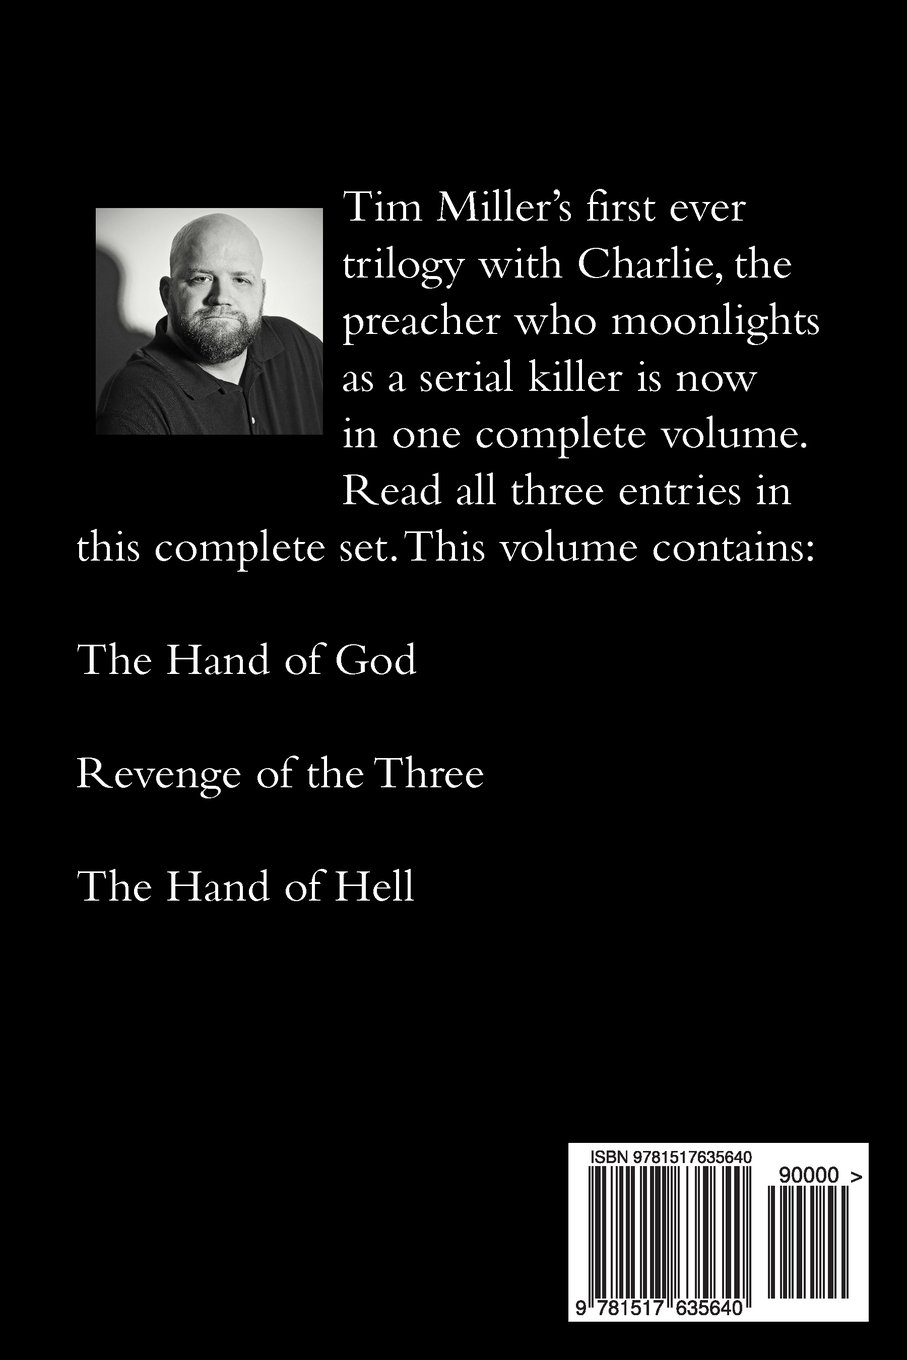 Tim Miller's Hand of God Trilogy: Tim Miller: 9781517635640: Amazon.com:  Books